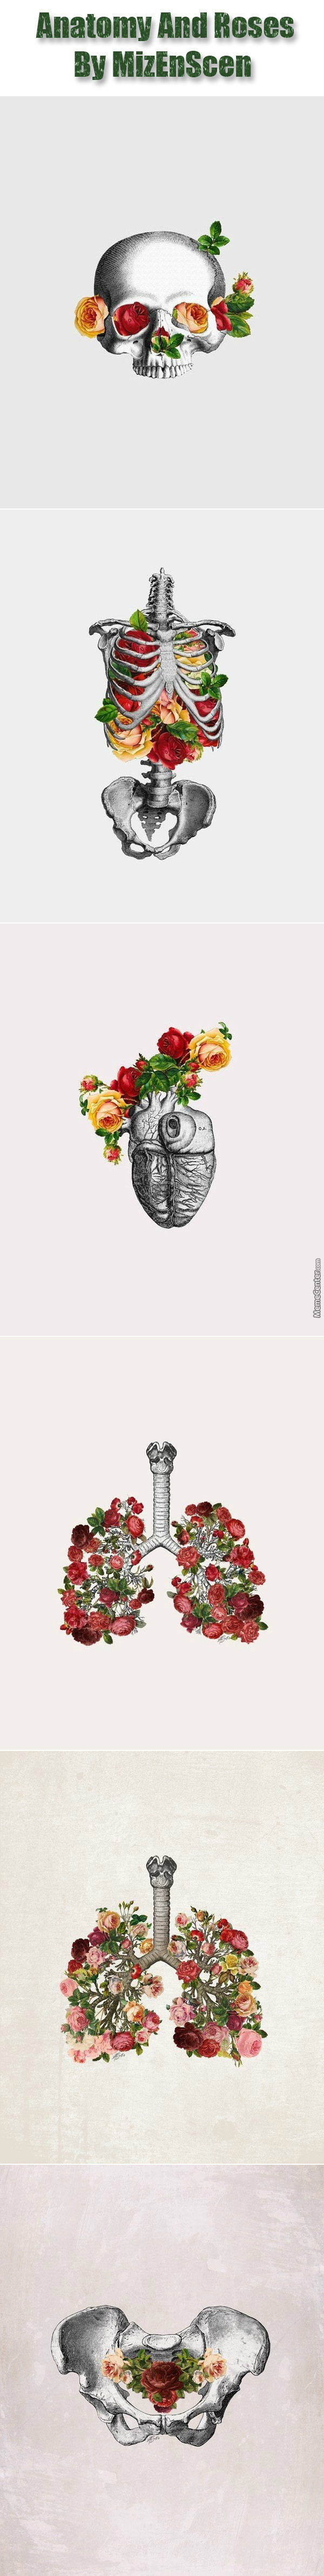 Anatomy And Roses